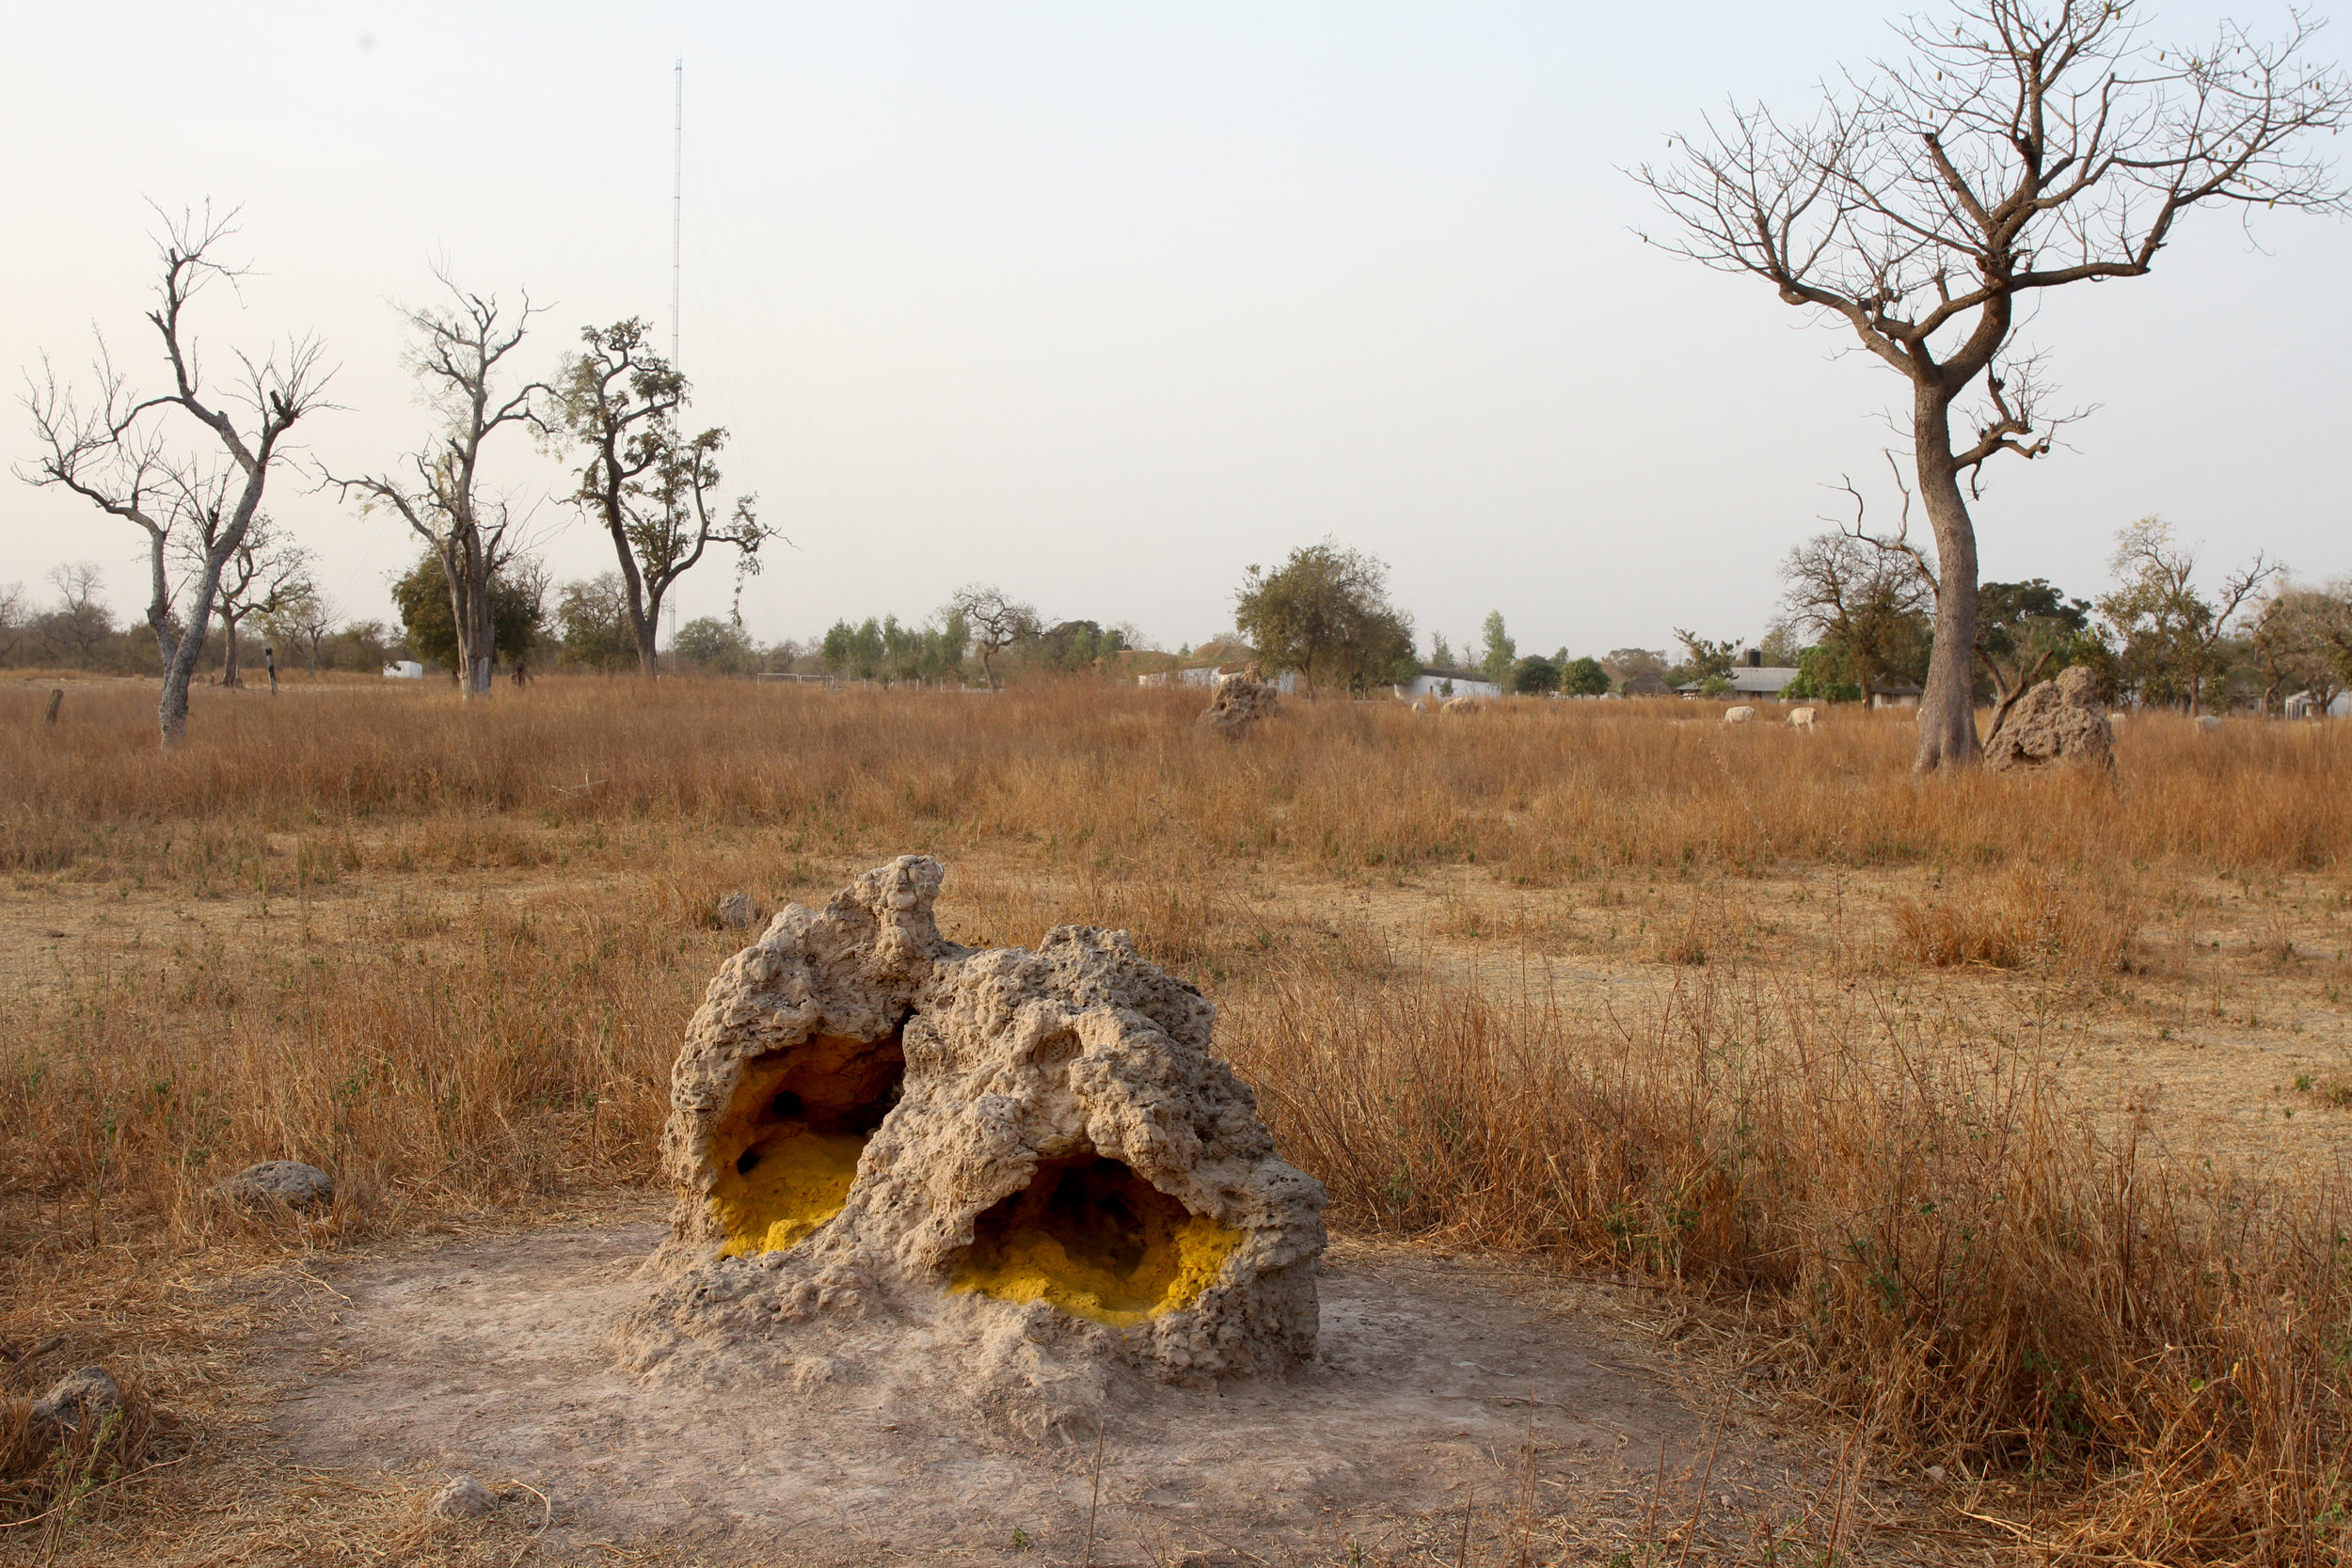 A termite mound painted with natural pigment.